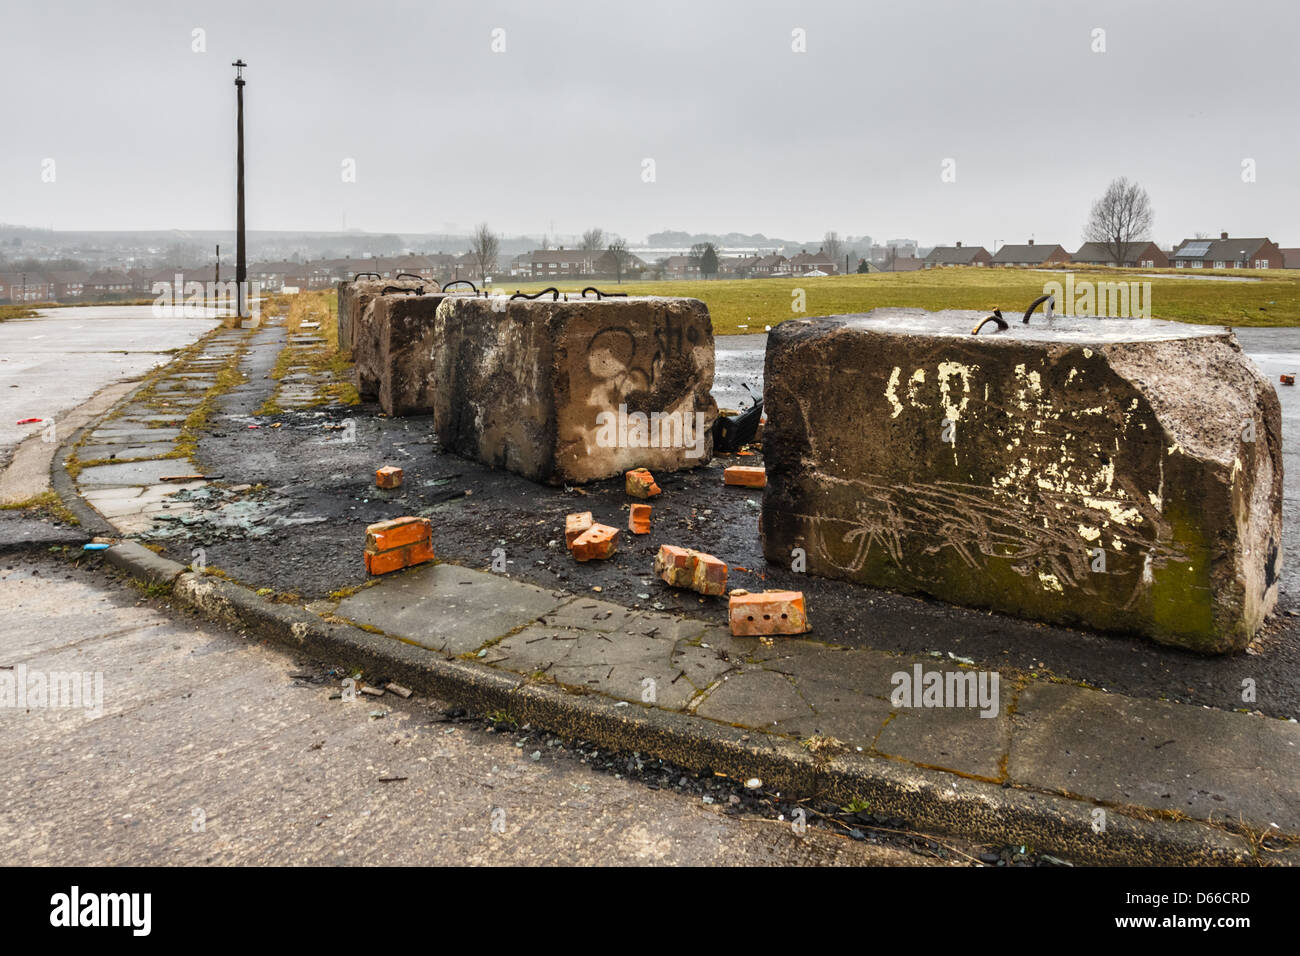 Concrete blocks form a barrier on wasteland created from a demolished housing estate in Pennywell, Sunderland, UK. - Stock Image